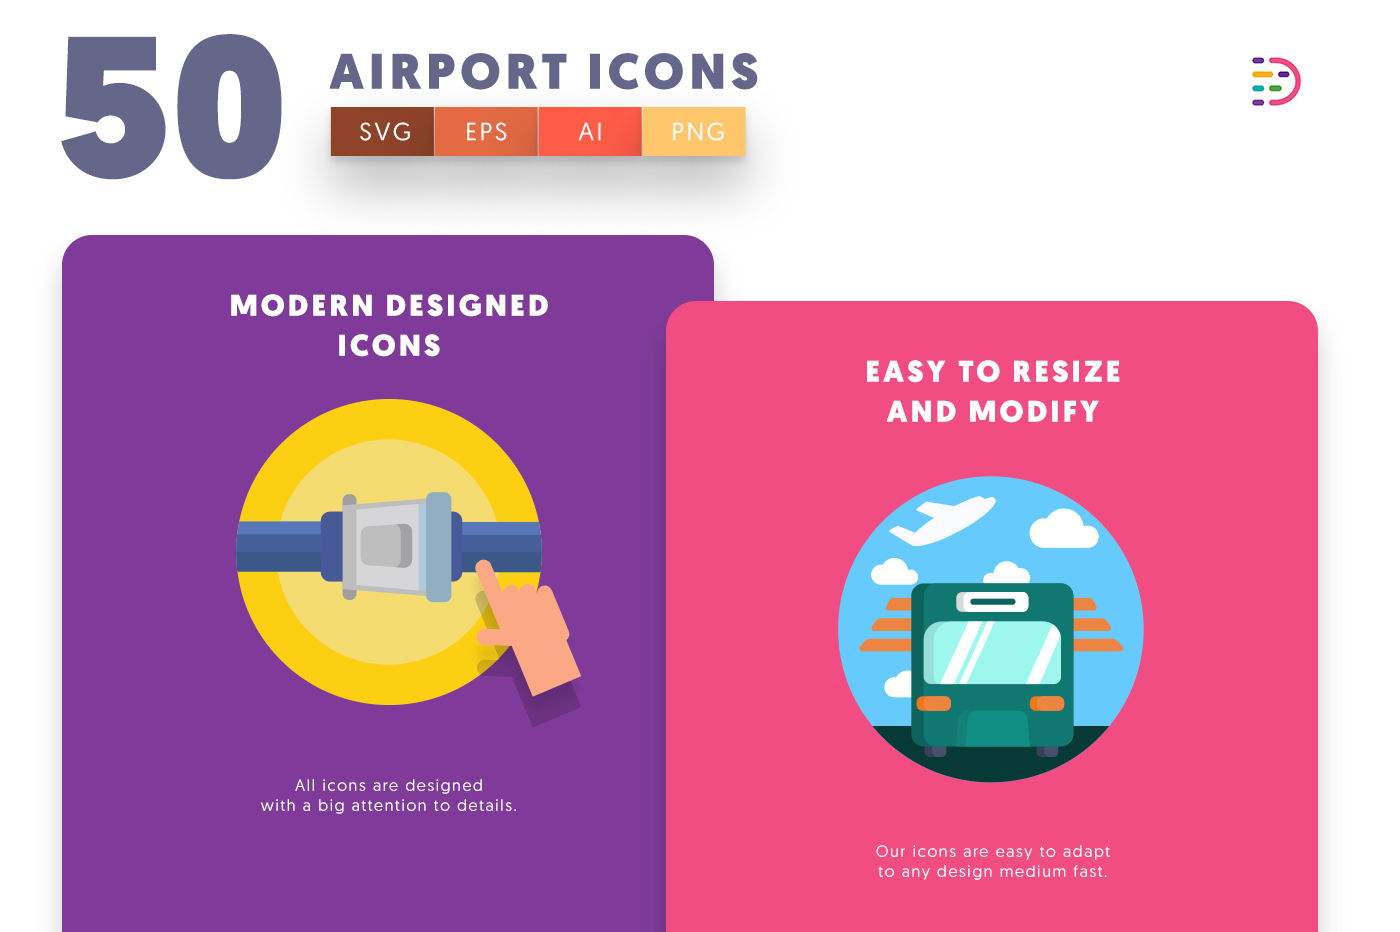 Airport icons png/svg/eps